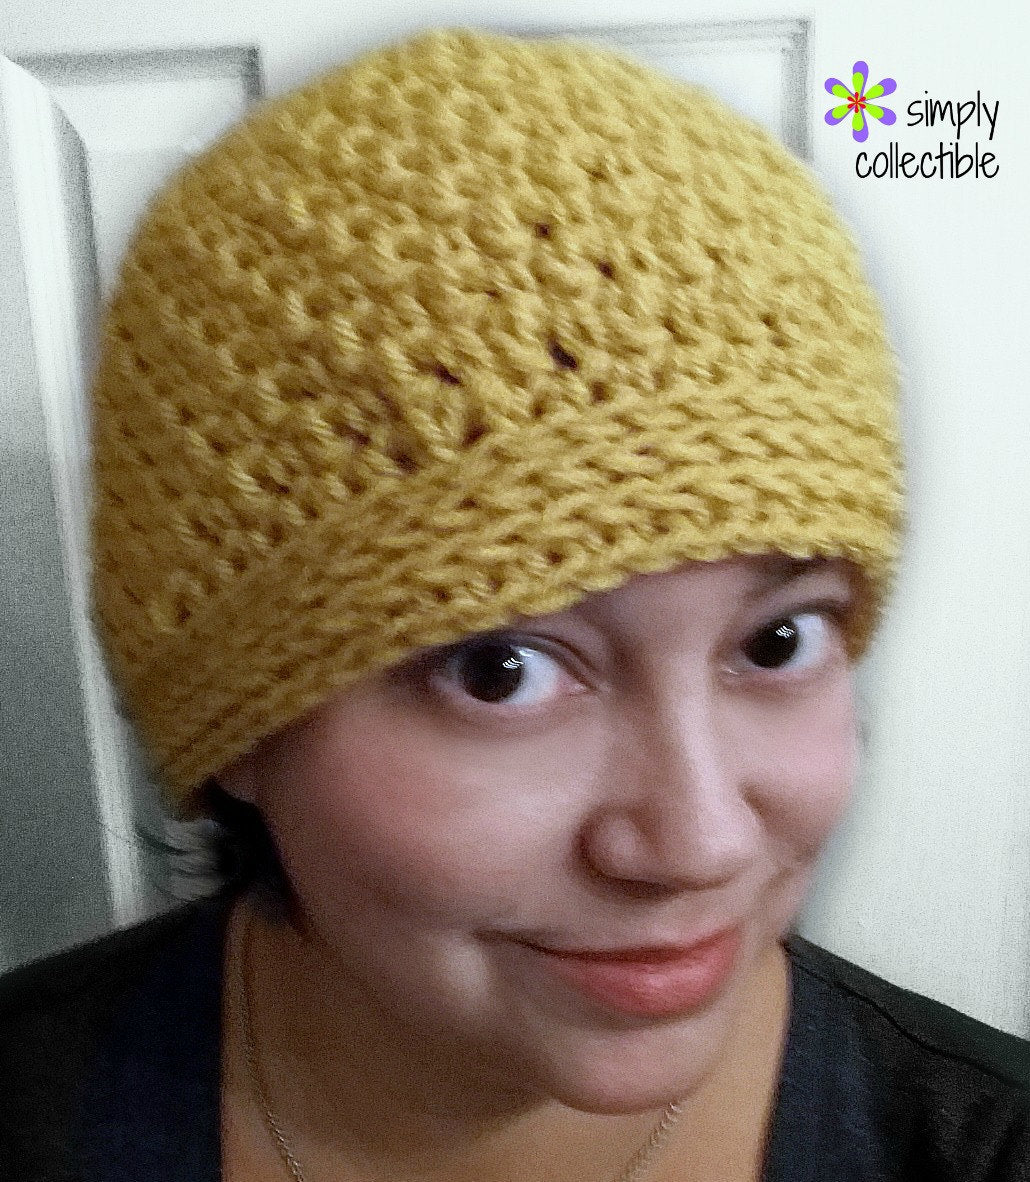 Back n Forth Messy Bun Hat 2-in-1 Crochet Pattern